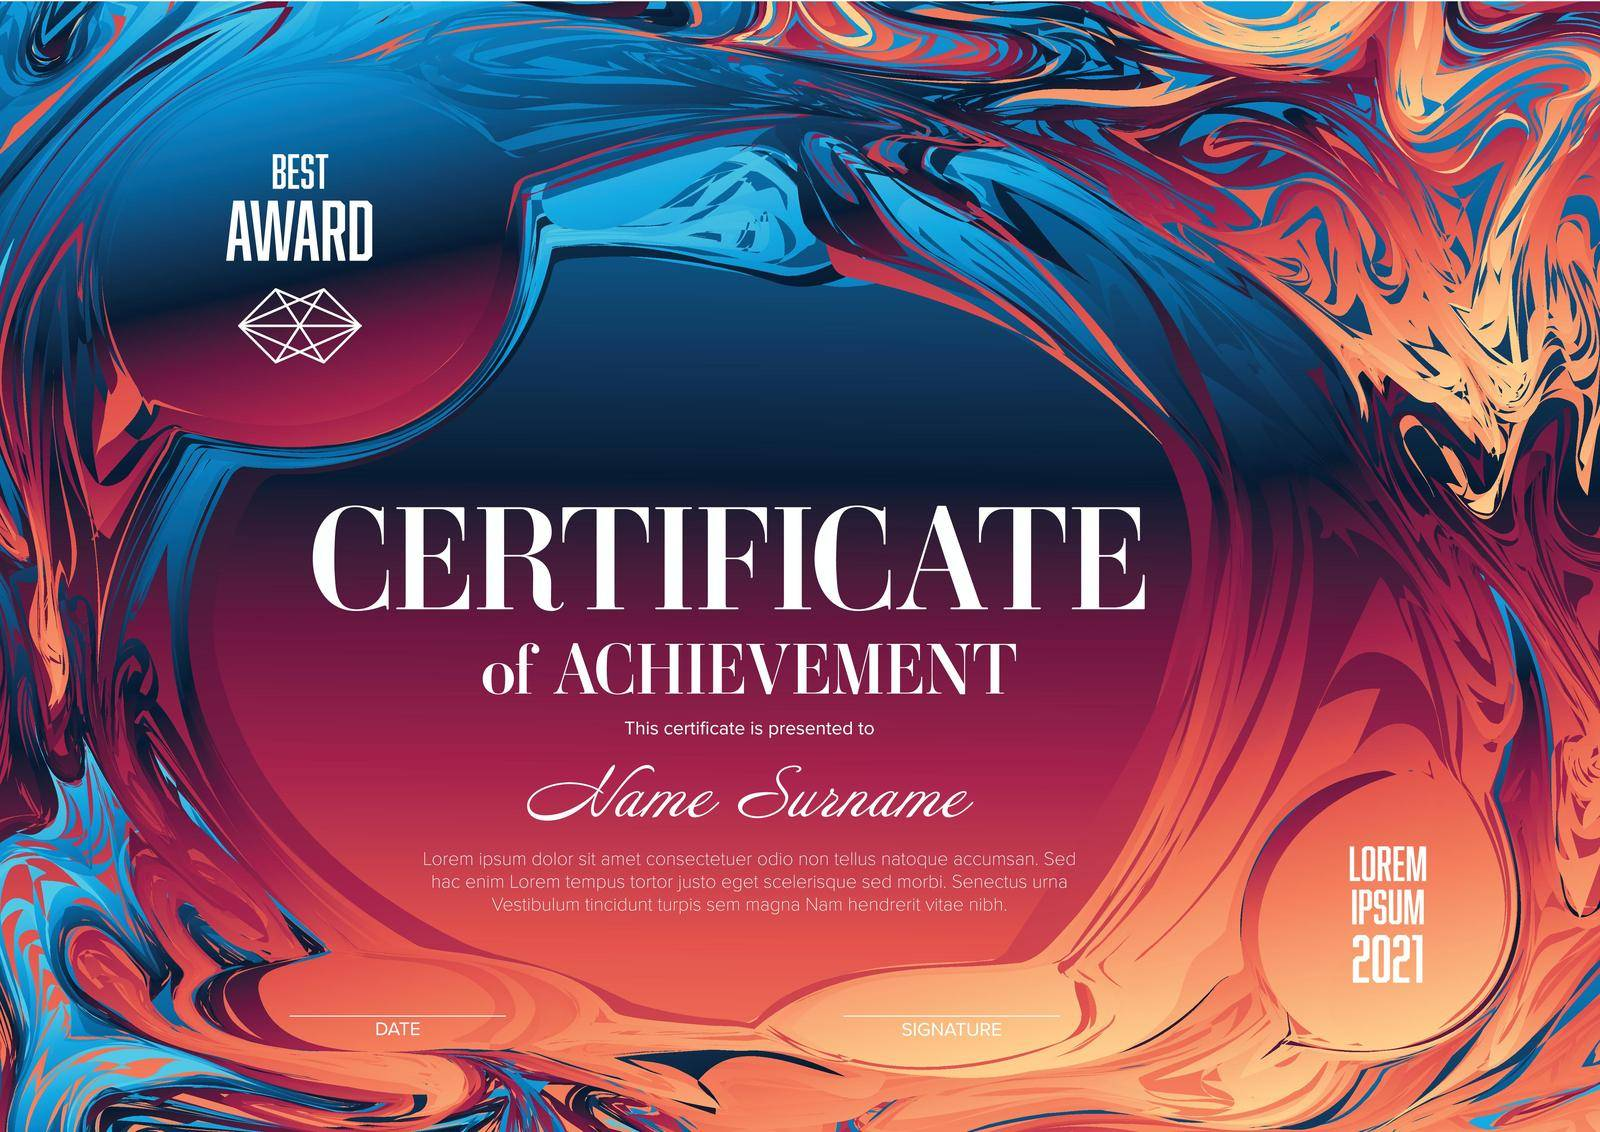 Modern art certificate of achievement template with place for your content - horizontal fresh colors version